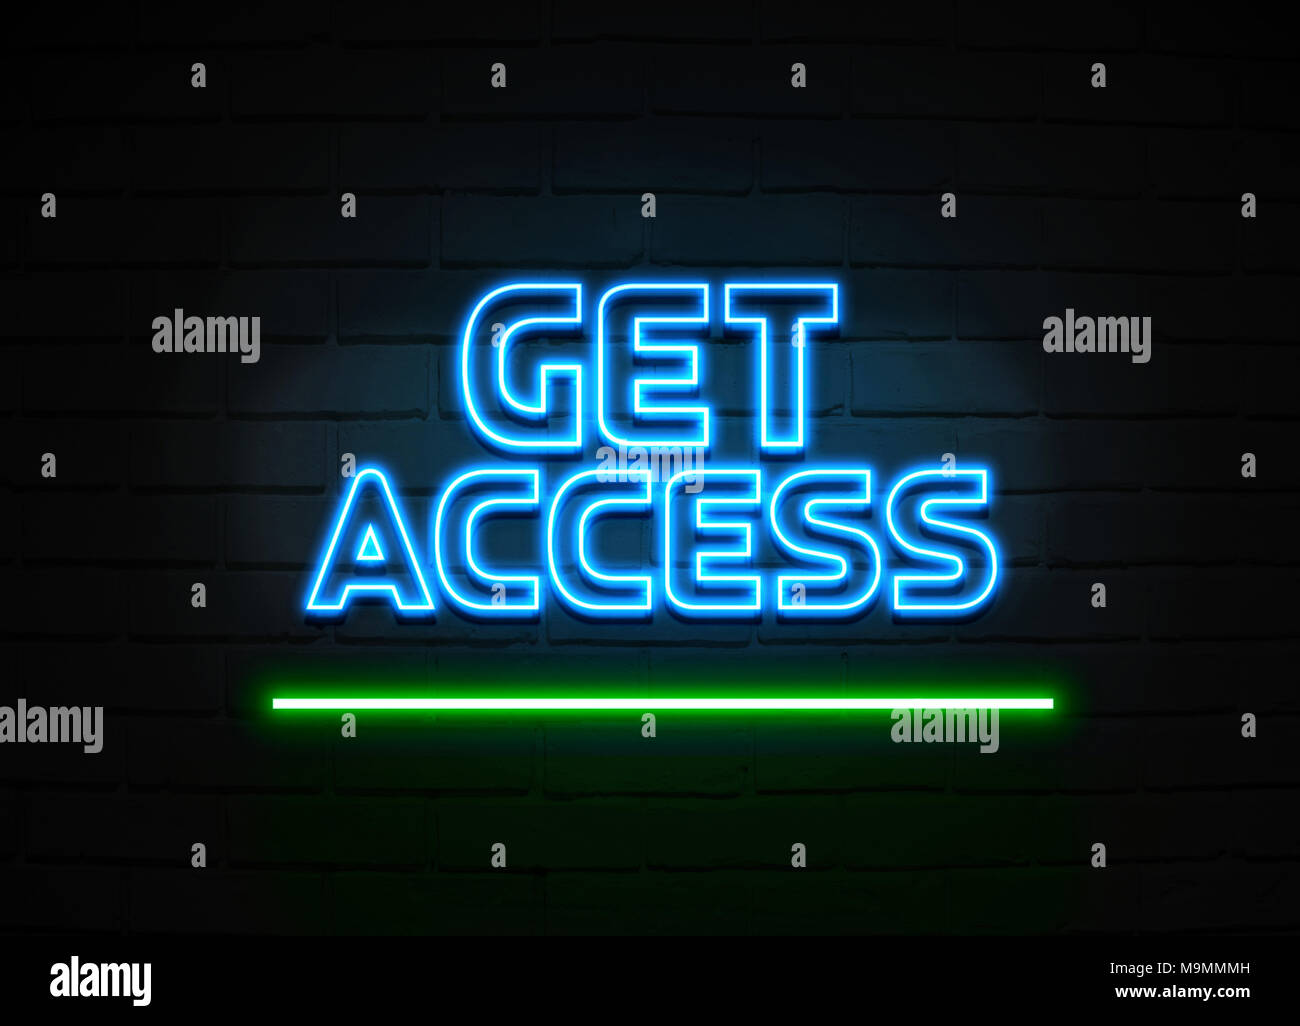 Get Access neon sign - Glowing Neon Sign on brickwall wall - 3D